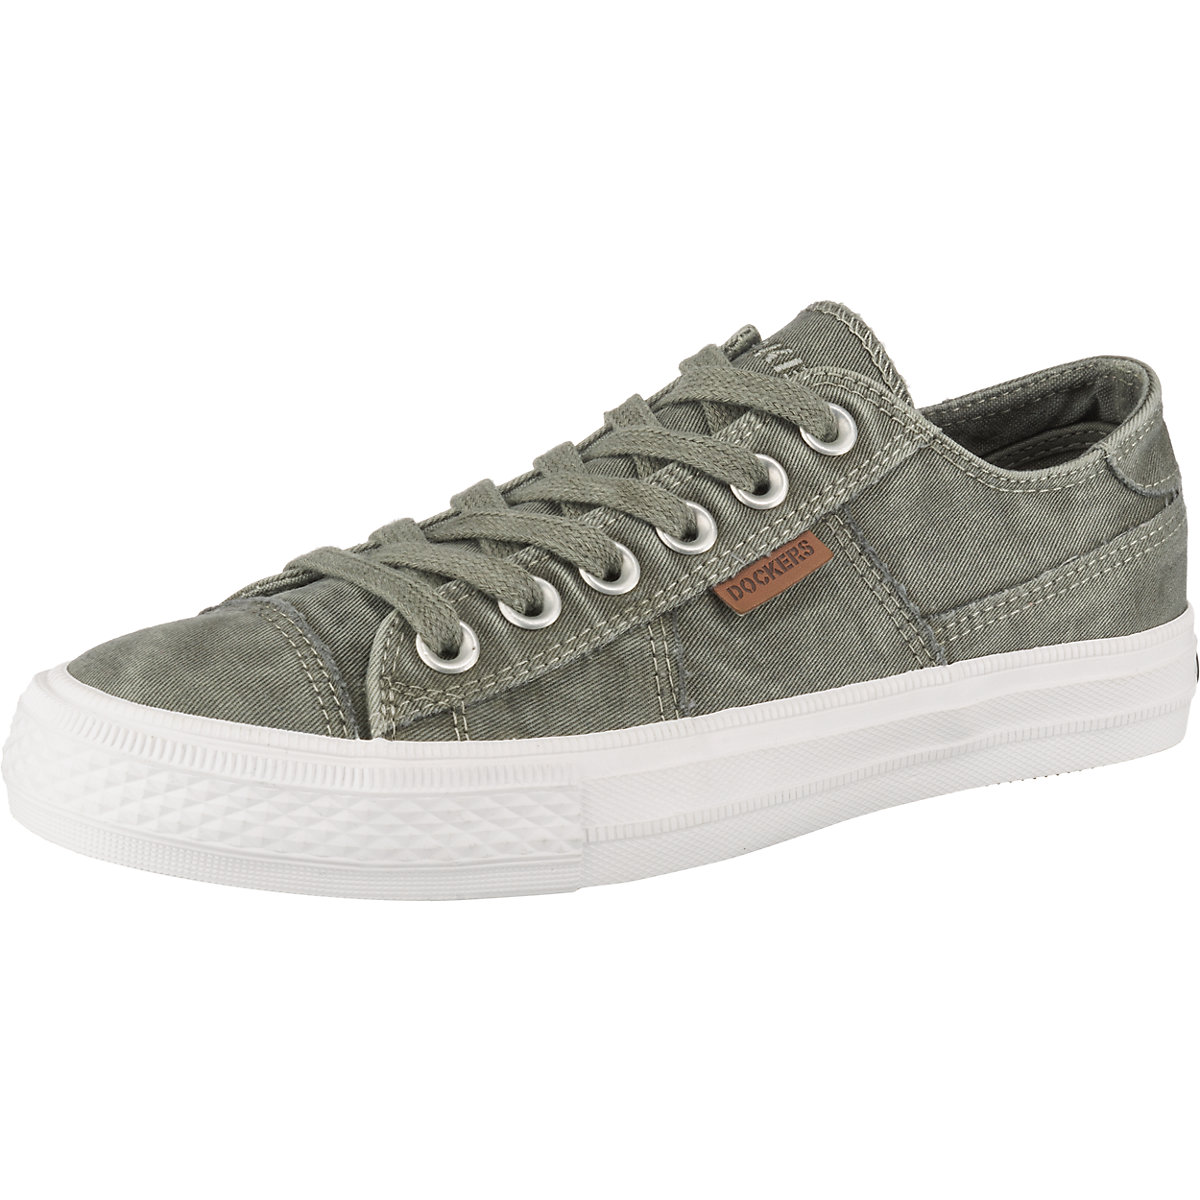 online retailer 2bda7 930bf Details about Dockers by Gerli 40th201-790850 Canvas Ladies Sneaker Shoes  Khaki